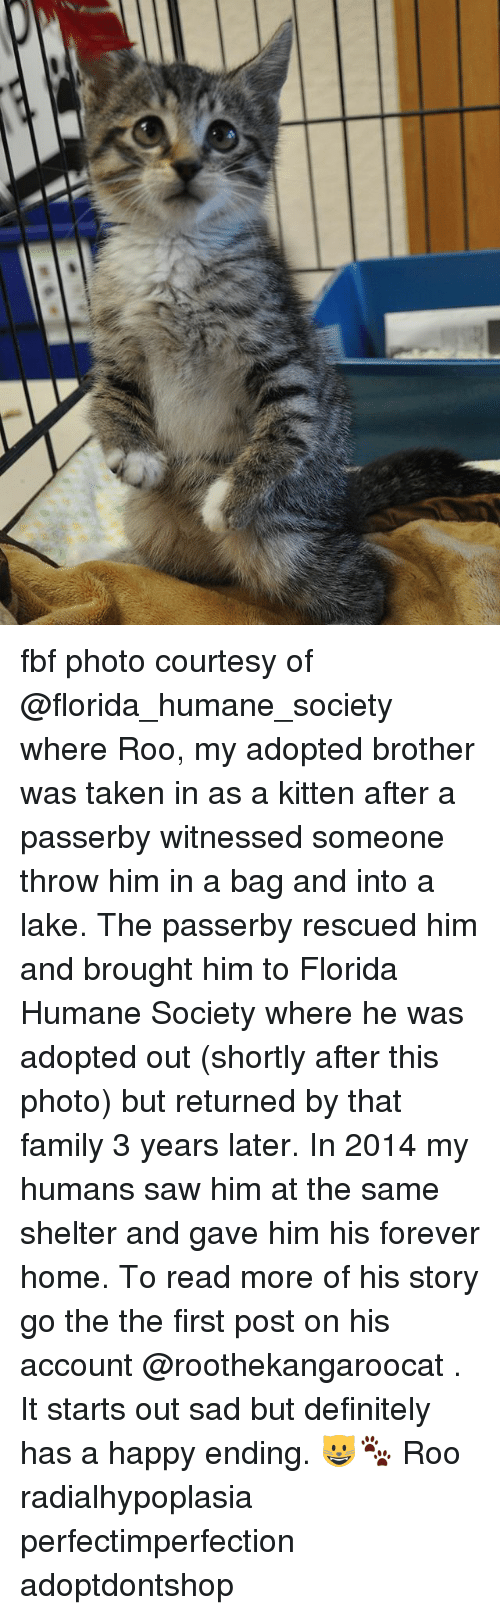 Definitely, Family, and Memes: fbf photo courtesy of @florida_humane_society where Roo, my adopted brother was taken in as a kitten after a passerby witnessed someone throw him in a bag and into a lake. The passerby rescued him and brought him to Florida Humane Society where he was adopted out (shortly after this photo) but returned by that family 3 years later. In 2014 my humans saw him at the same shelter and gave him his forever home. To read more of his story go the the first post on his account @roothekangaroocat . It starts out sad but definitely has a happy ending. 😺🐾 Roo radialhypoplasia perfectimperfection adoptdontshop